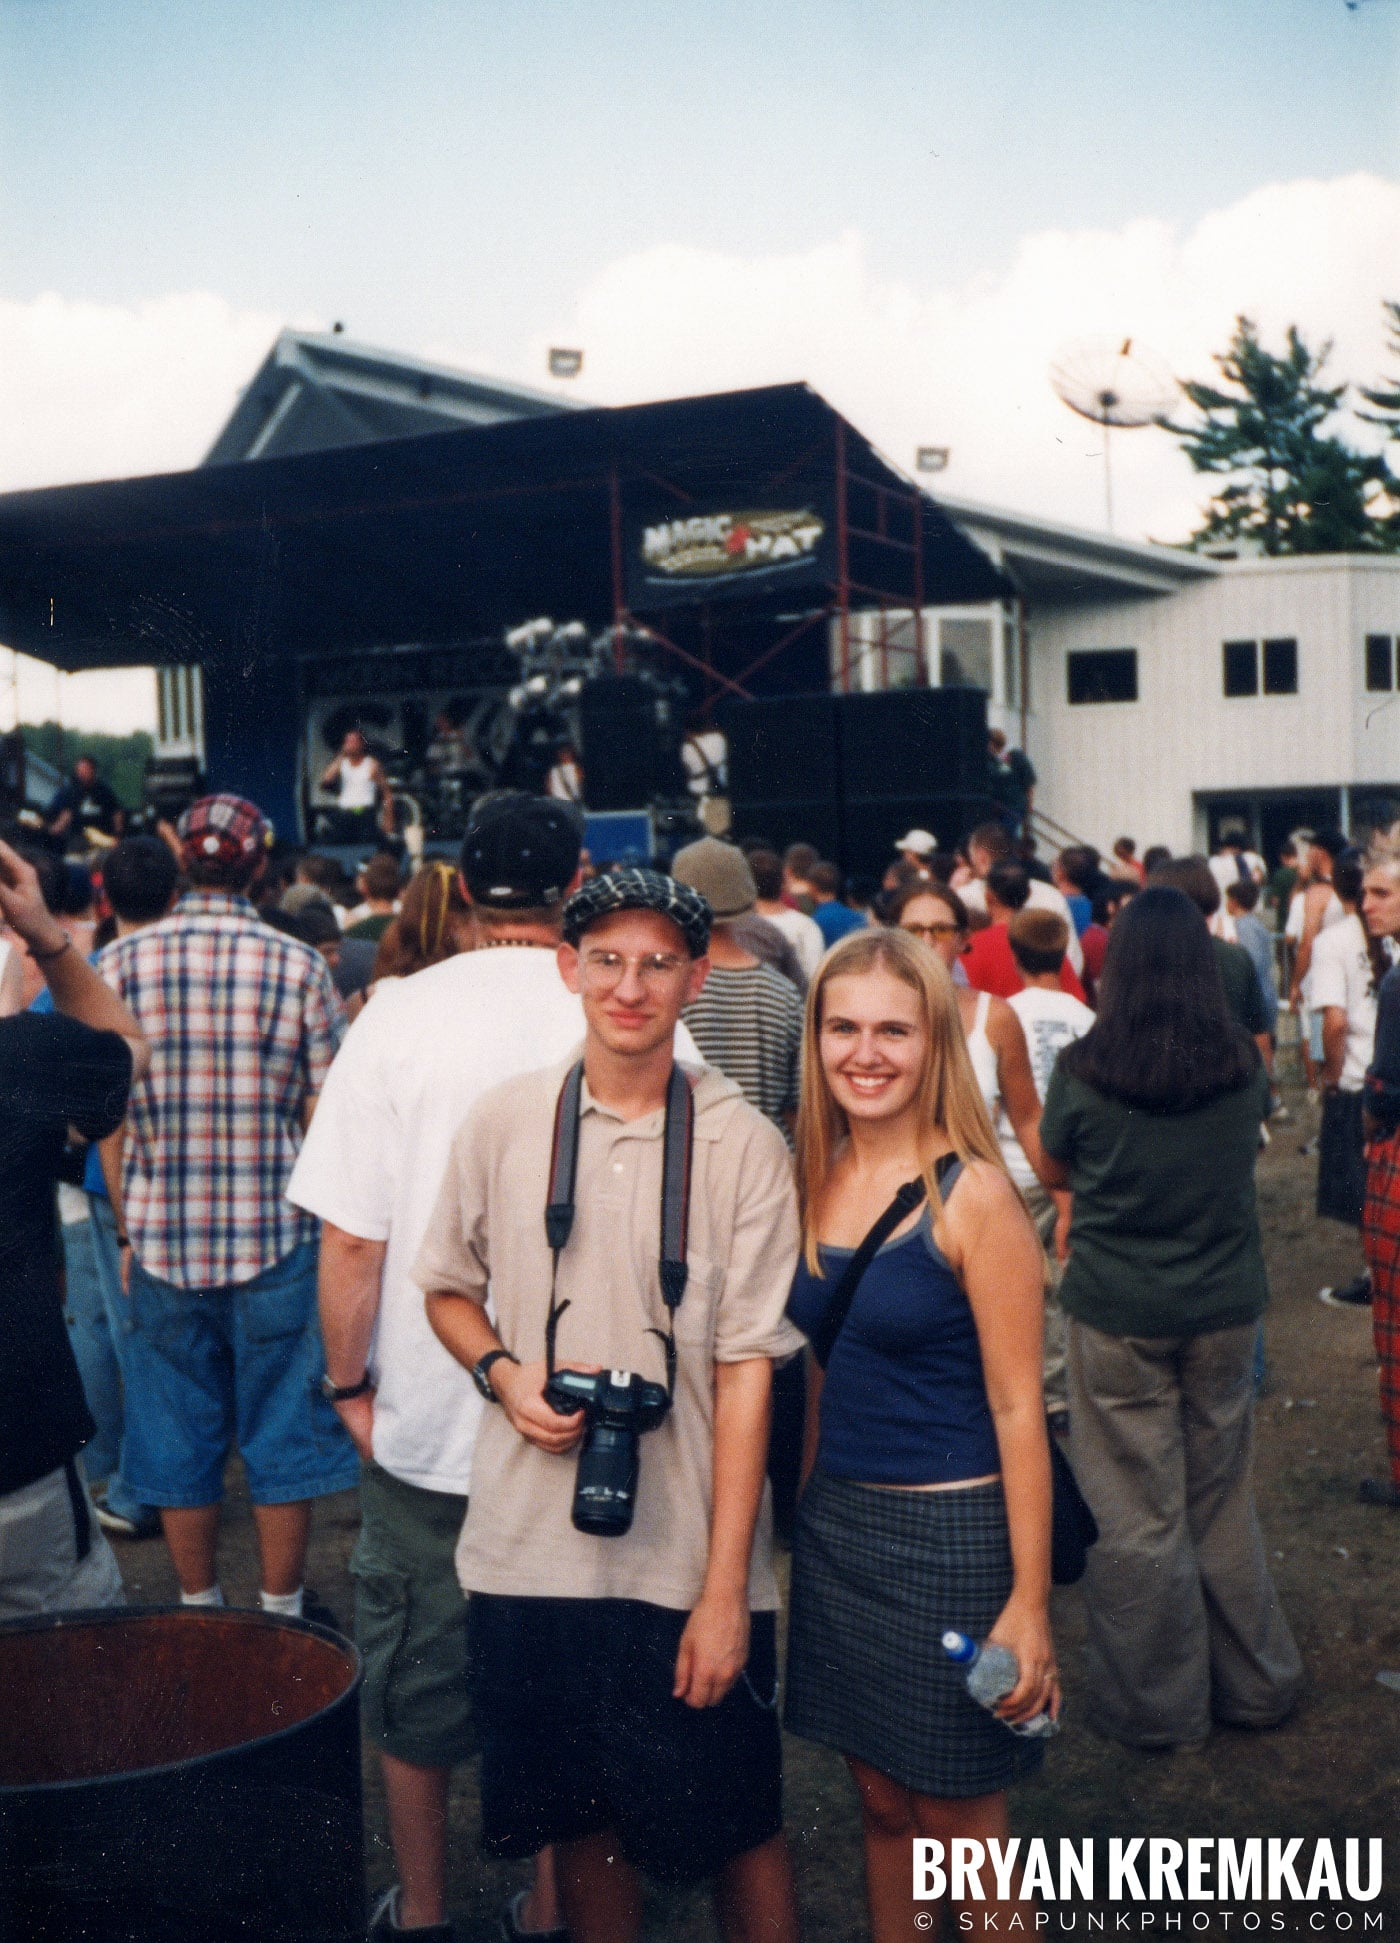 Crowd Shots @ New England Ska Fest 98, Westford, MA - 8.22.98 (1)